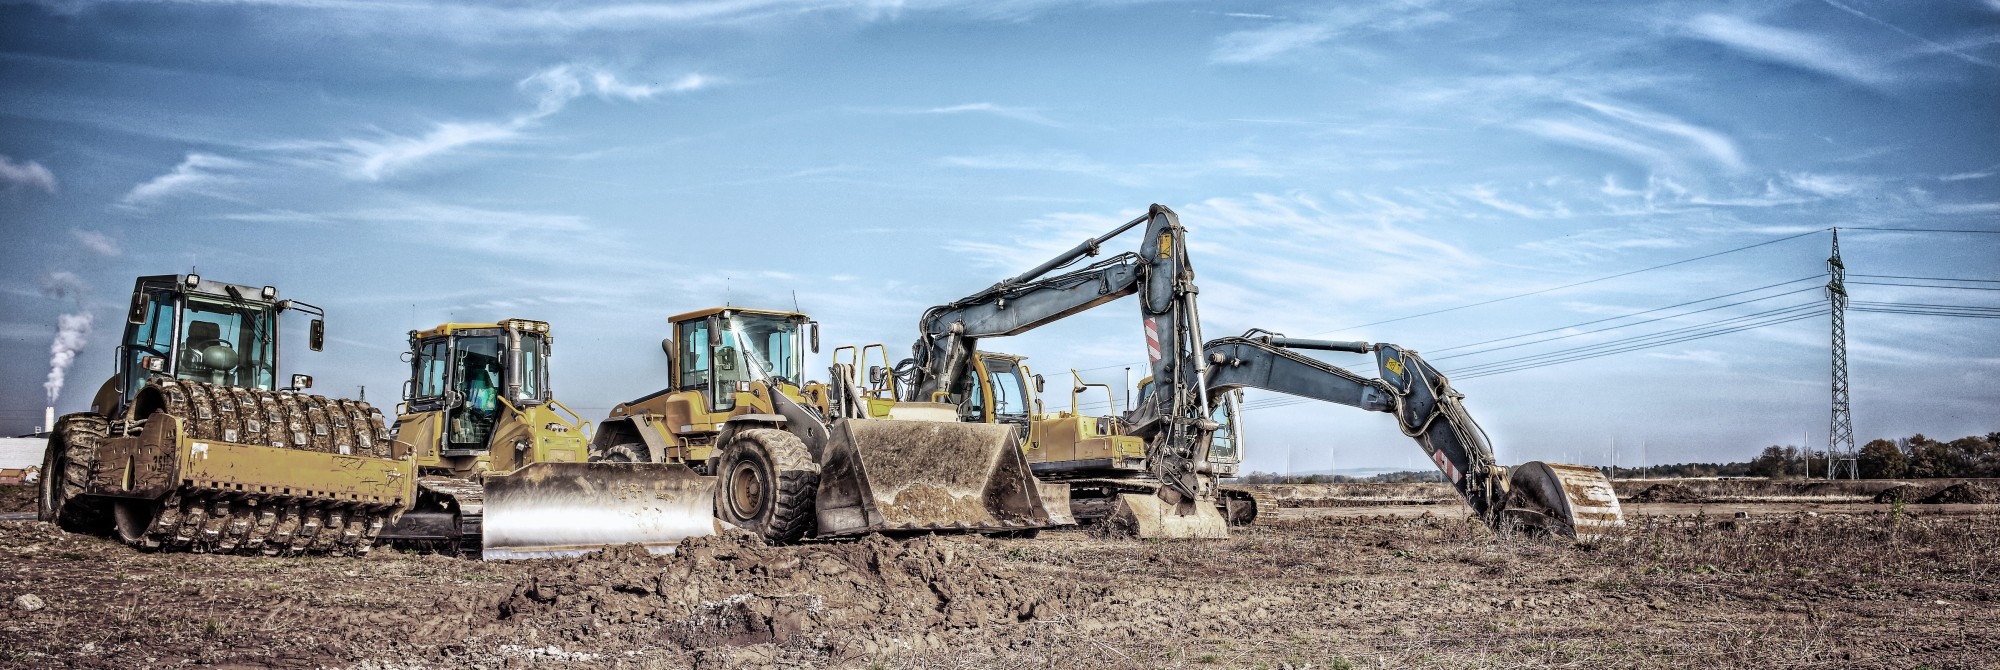 Heavy Equipment, Operating Engineers and Other Construction Equipment Operators</br><span style='color:#fff;font-size:30px;'>Construction, Forestry and Paving</span>